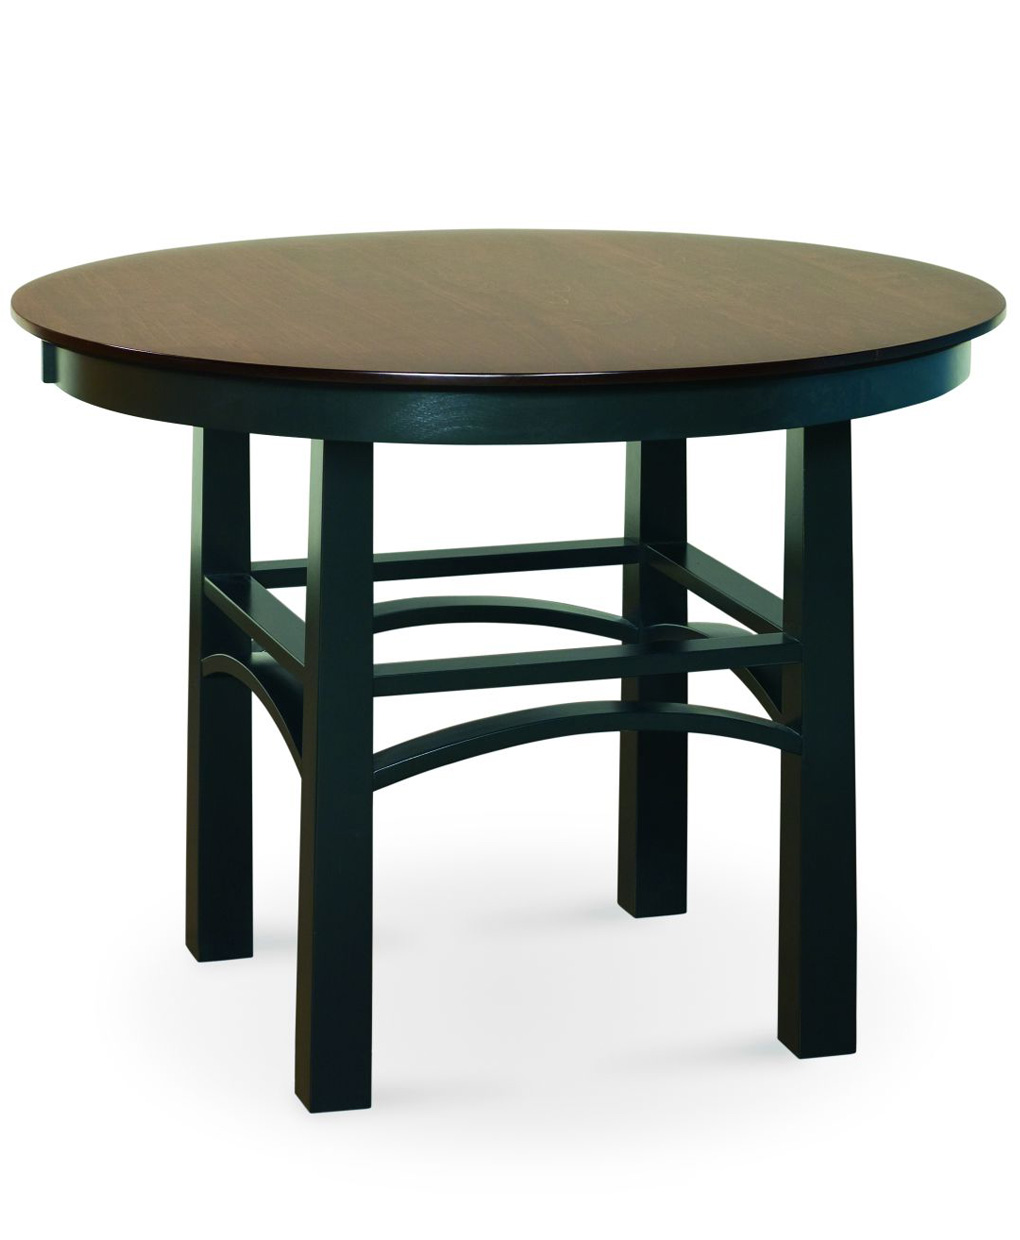 Artesa pub table amish direct furniture artesa amish pub table watchthetrailerfo